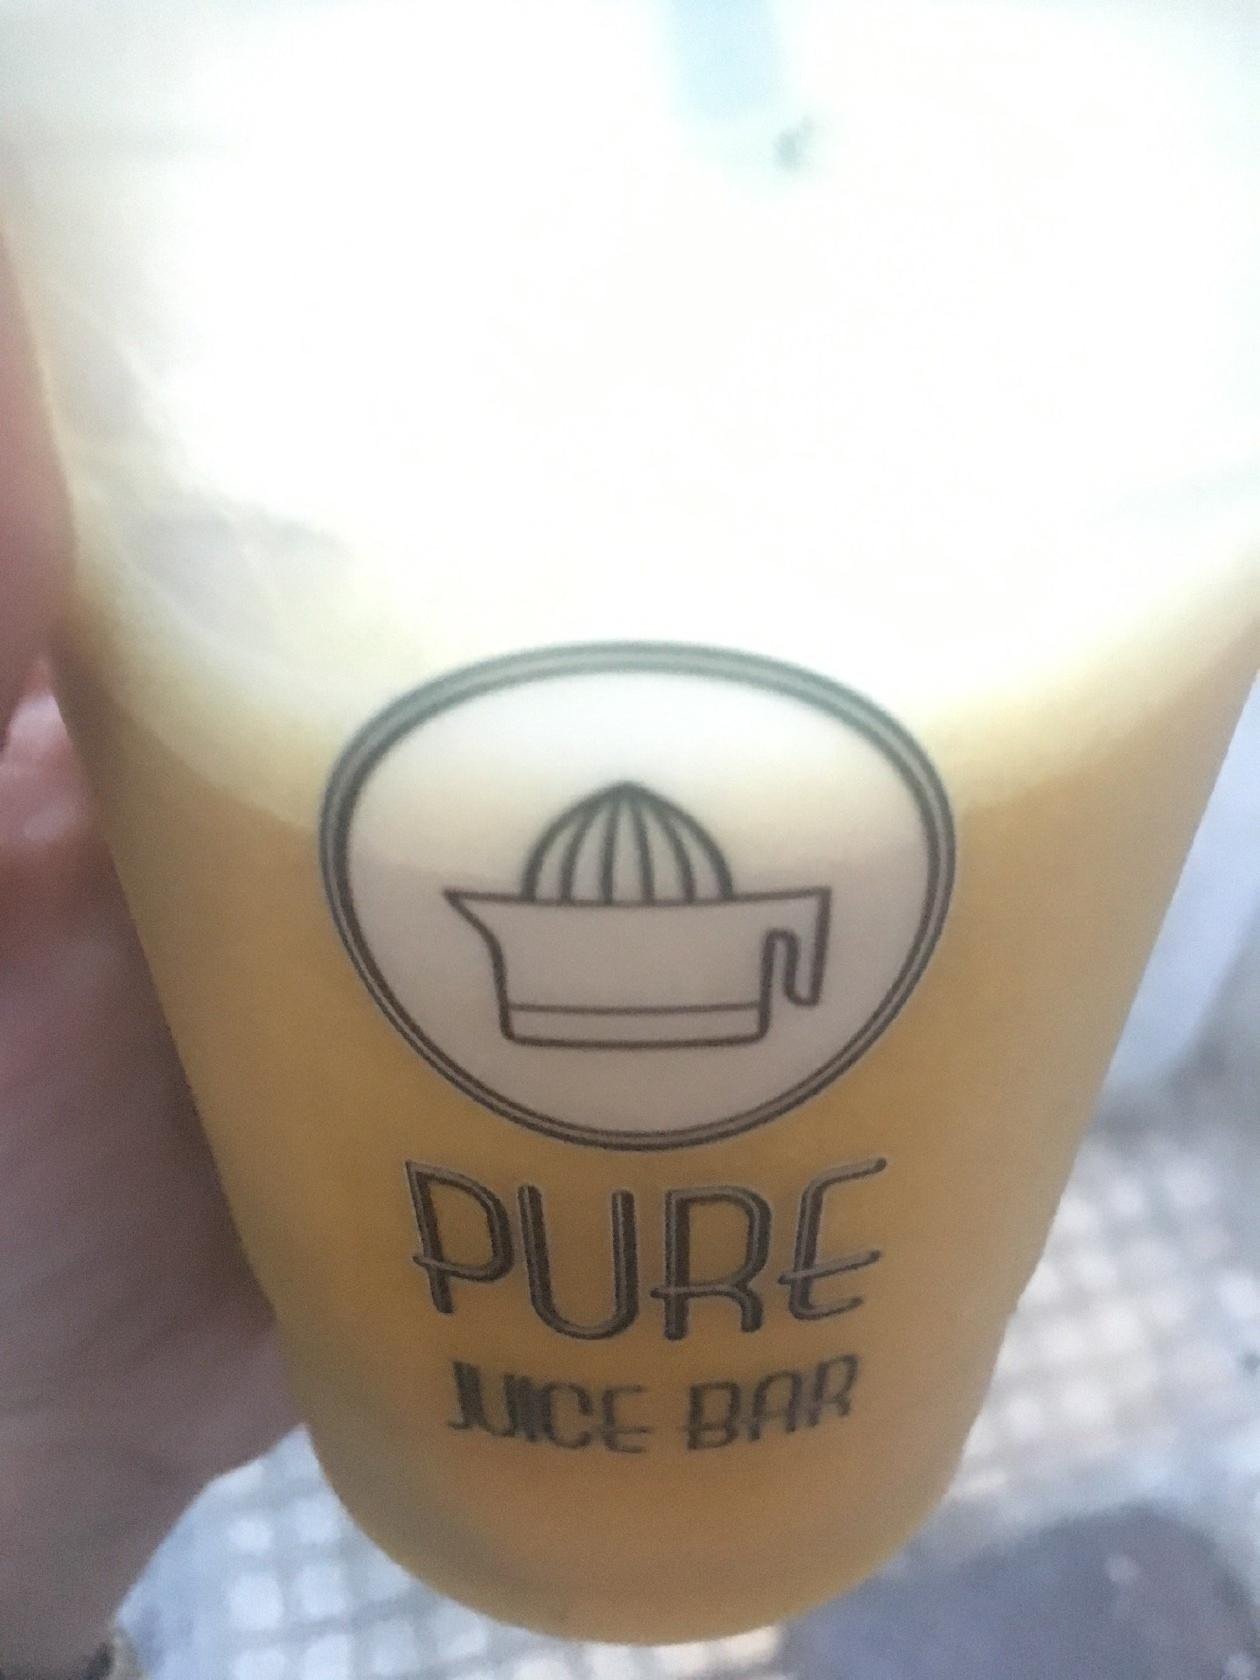 The logo of PURE Juice Bar